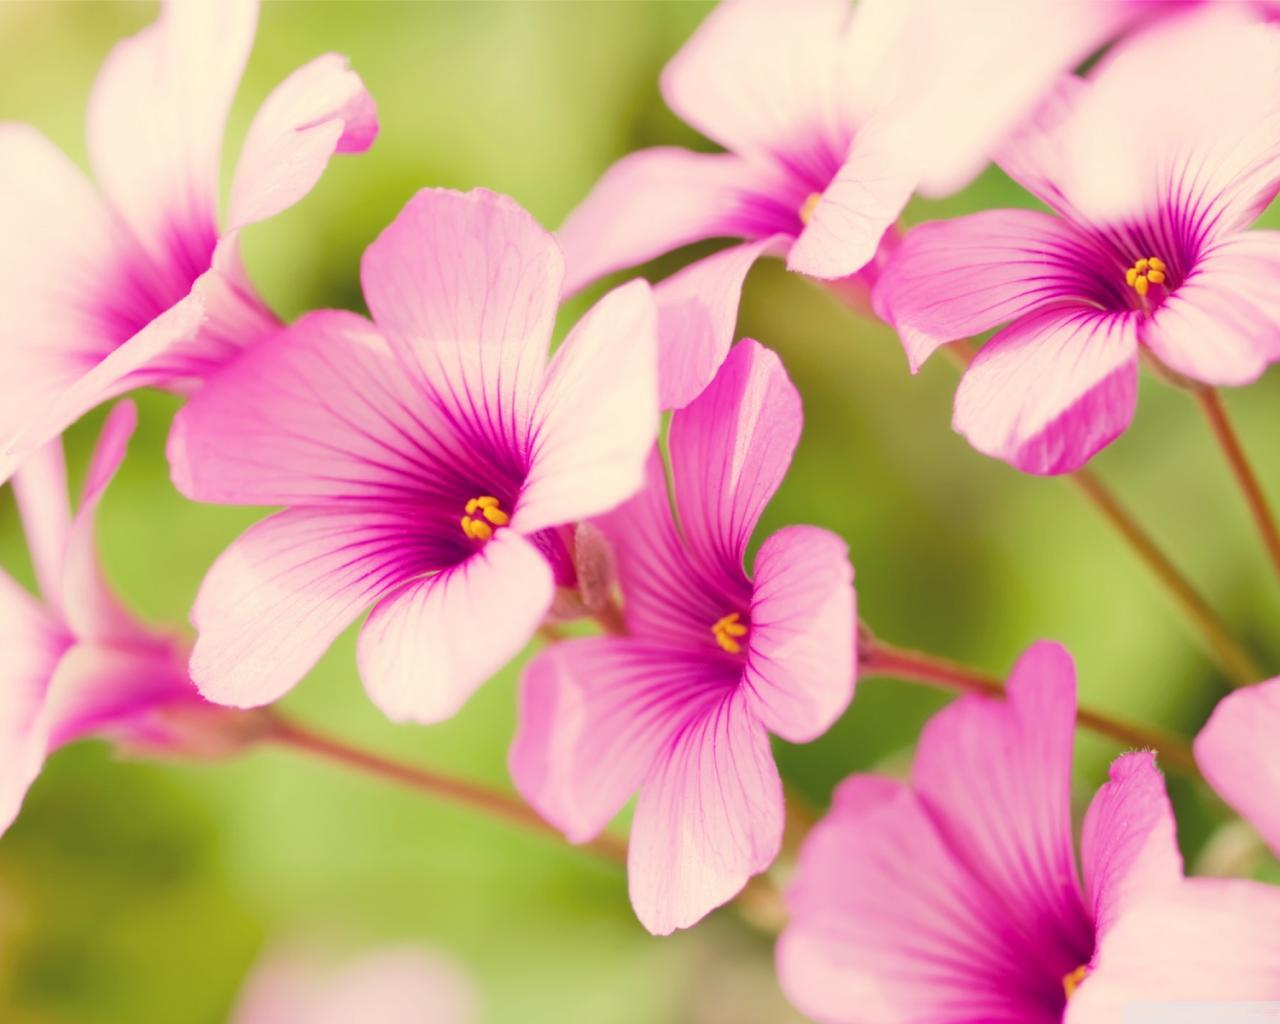 Download free flowers pictures rr collections.